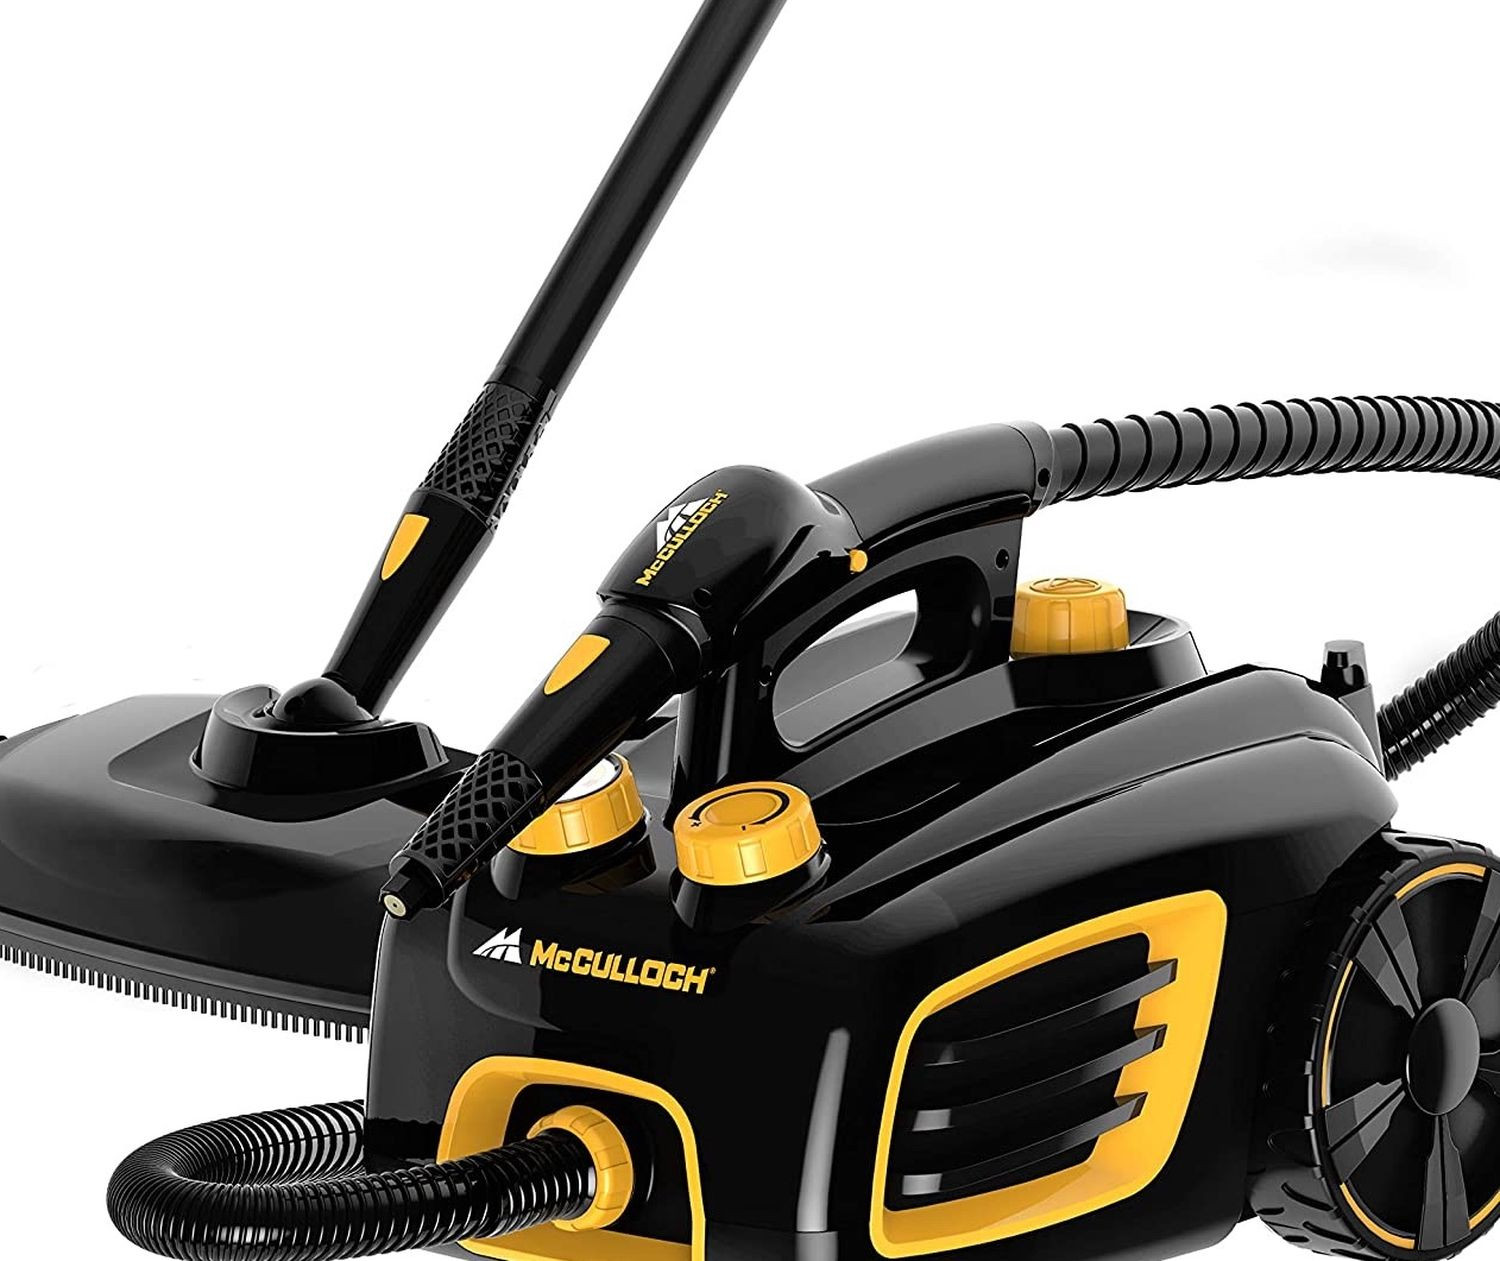 McCulloch MC1375 Canister Steam Cleaner with 20 Accessories, Extra-Long Power Cord, Chemical-Free Cleaning for Most Floors, Counters, Appliances, Wind